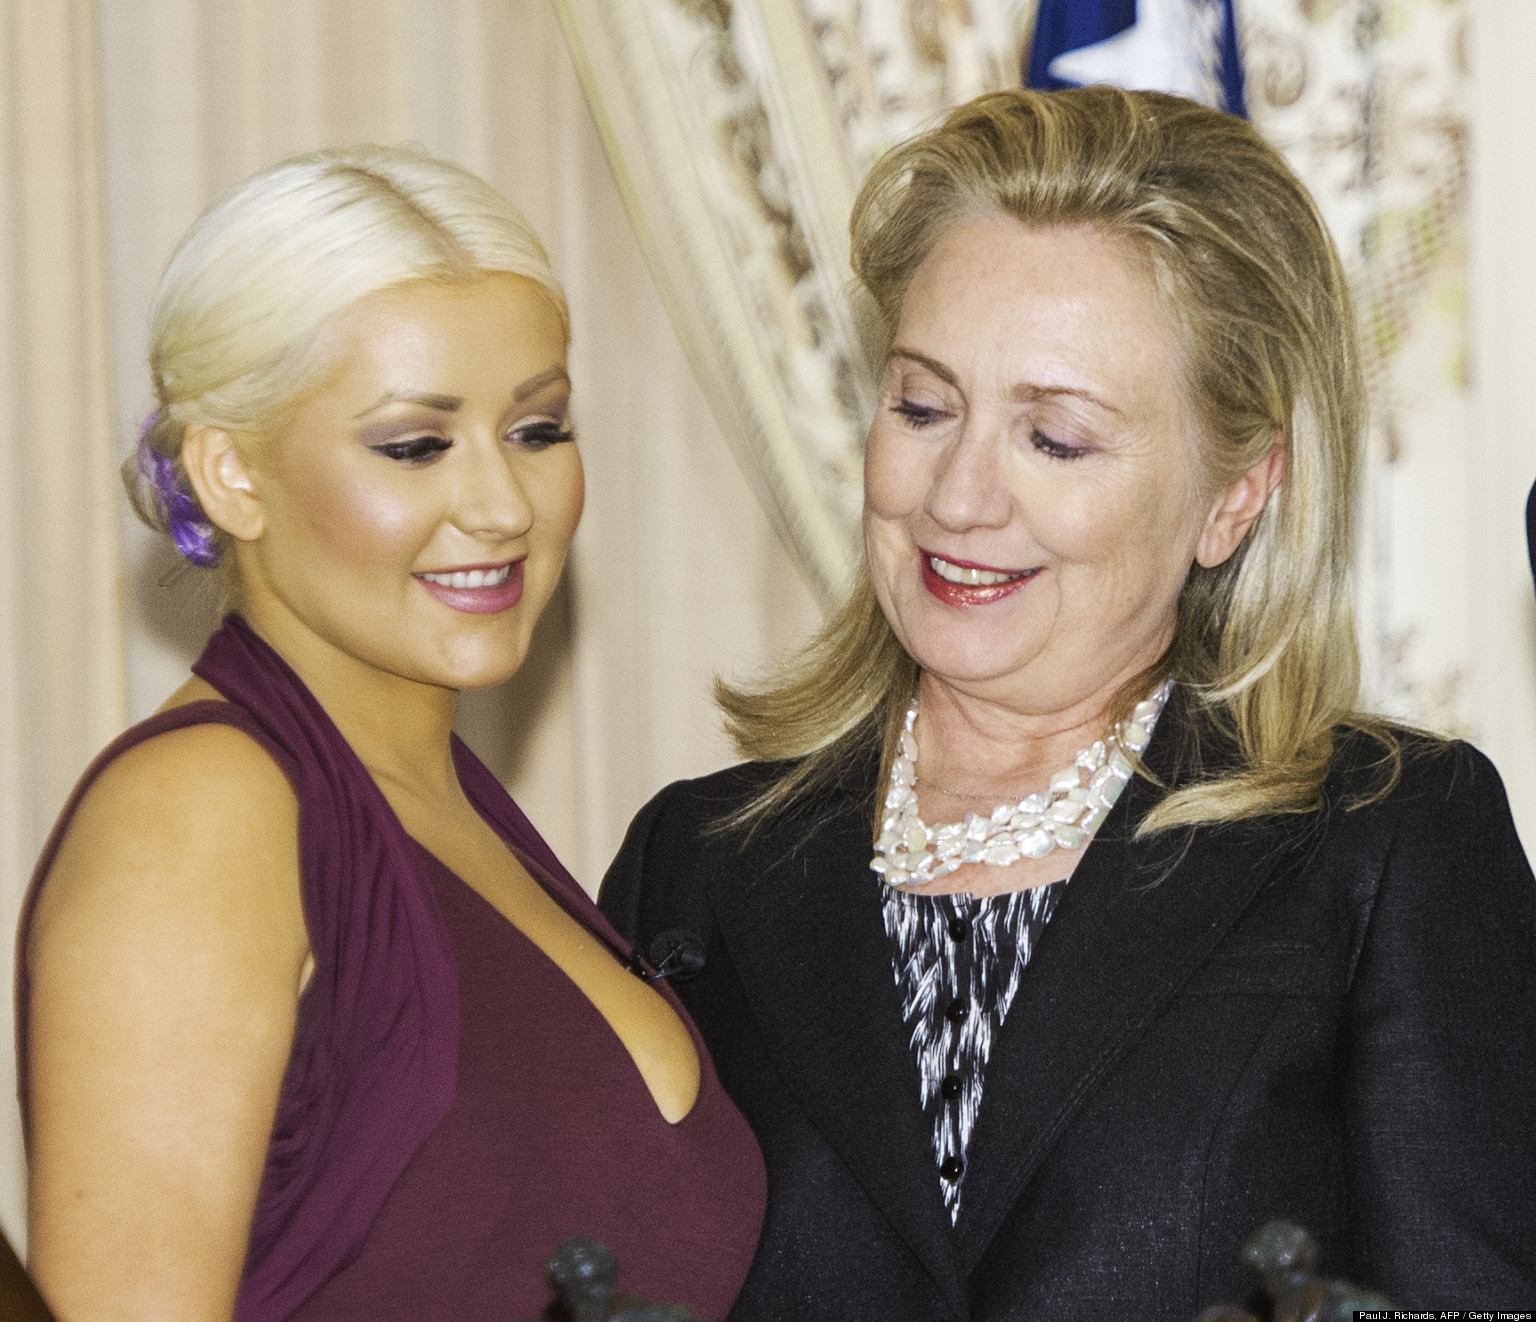 Hillary cathy eating pussies wife republican